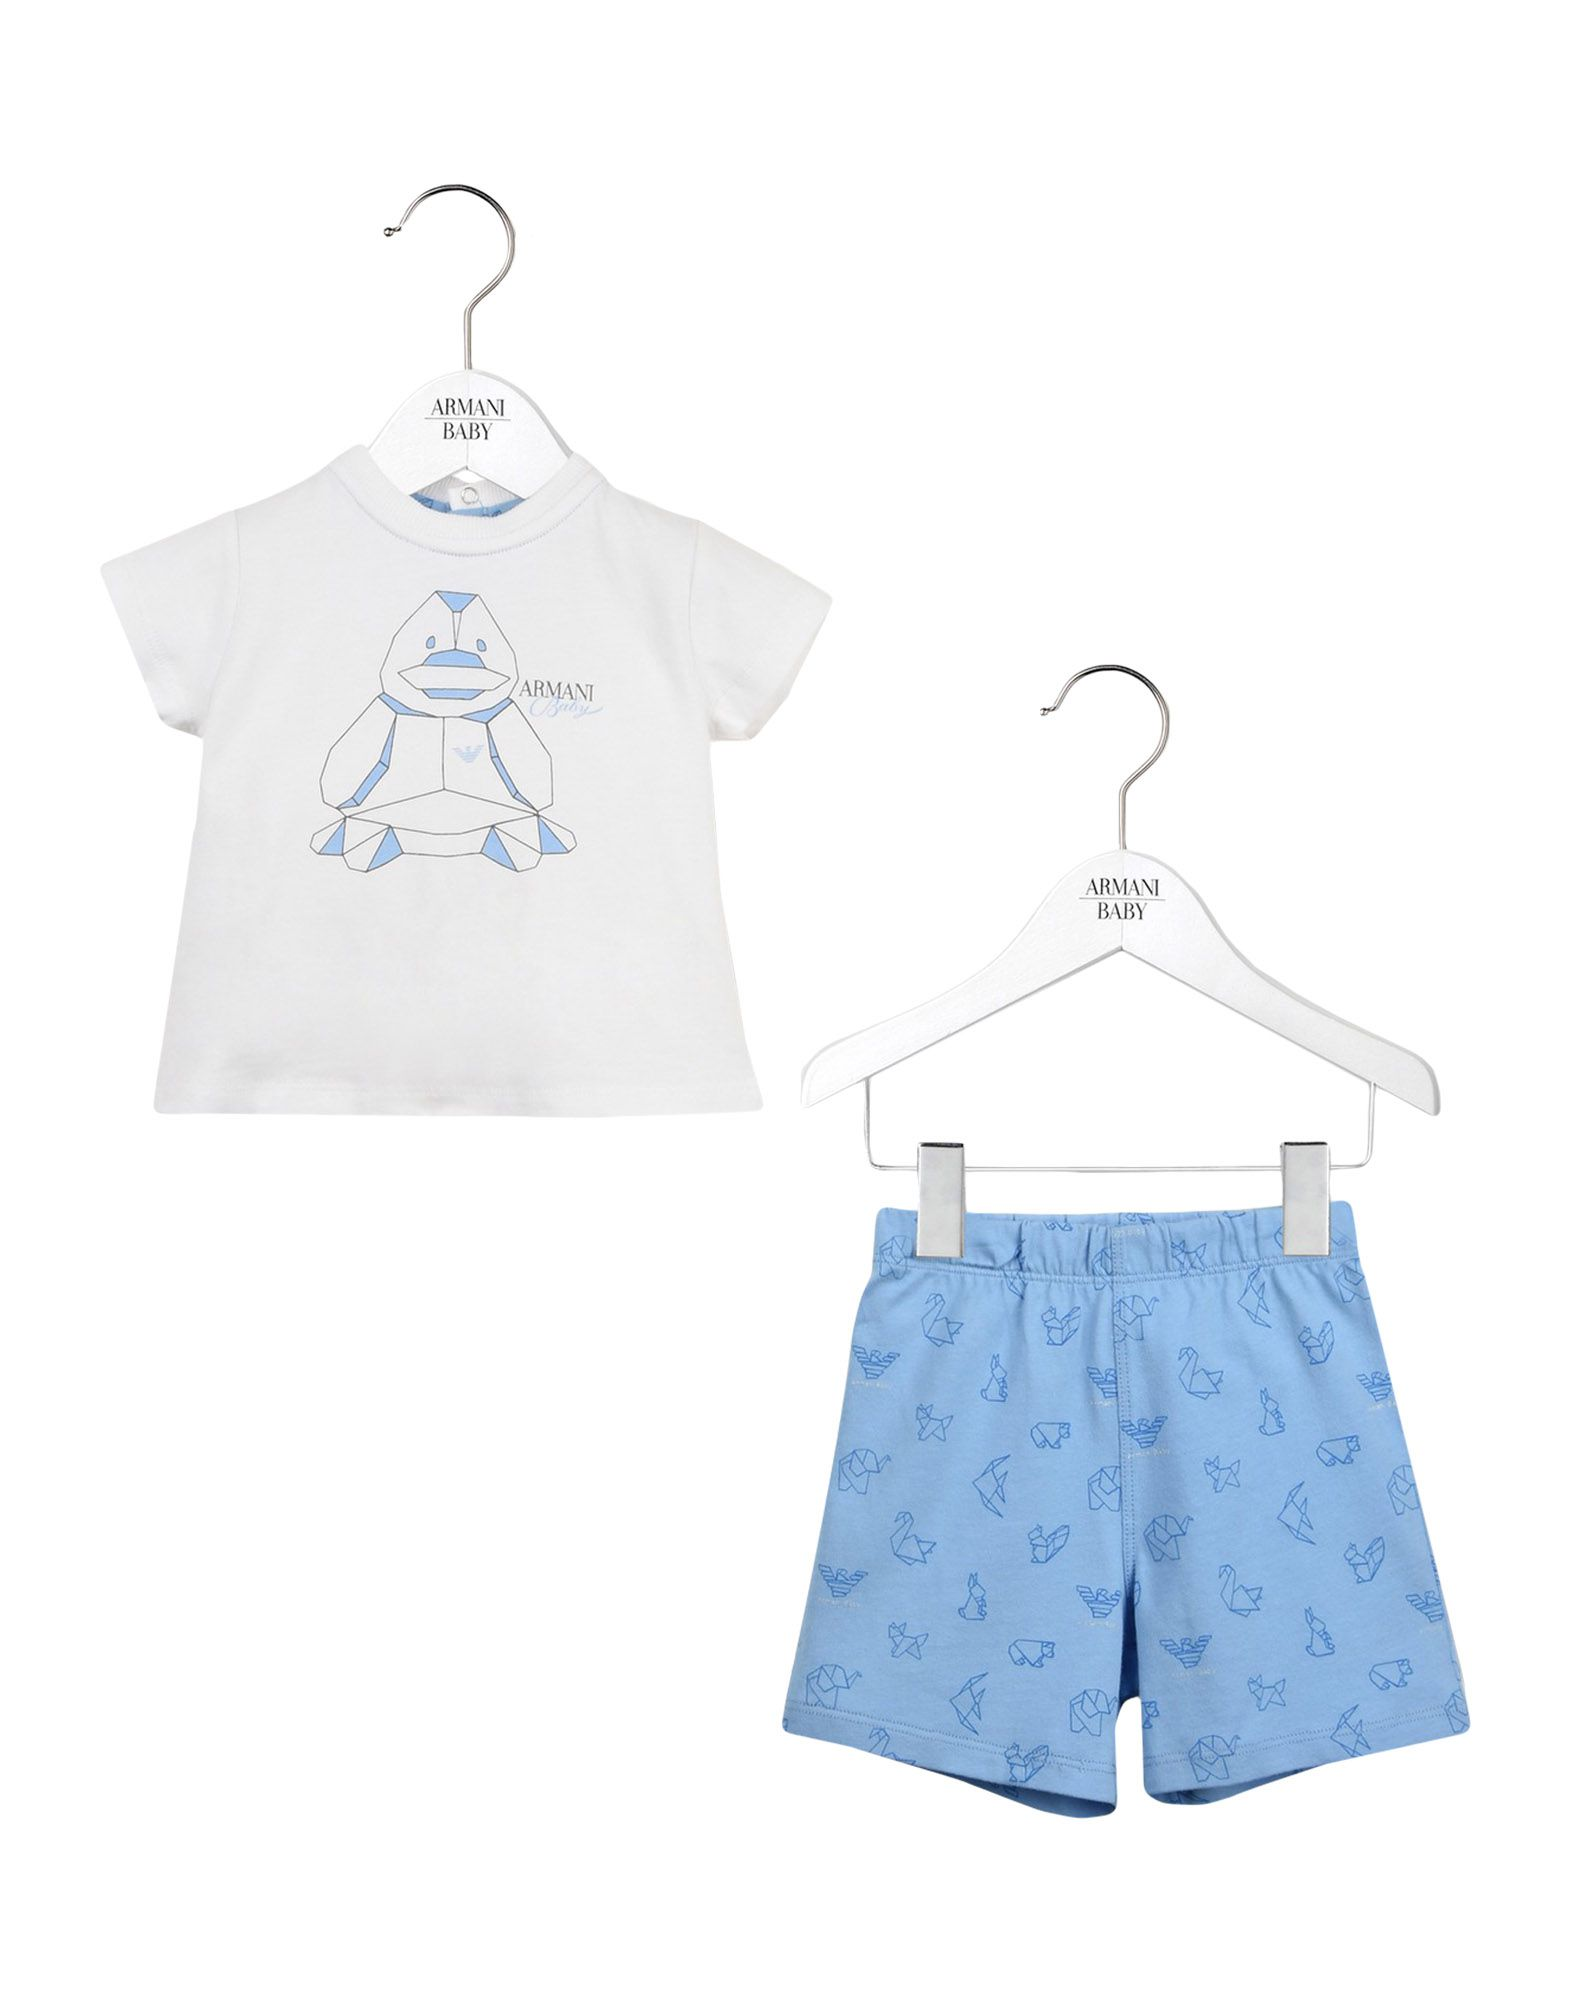 Armani Junior clothing for baby boy & toddler 0 24 months